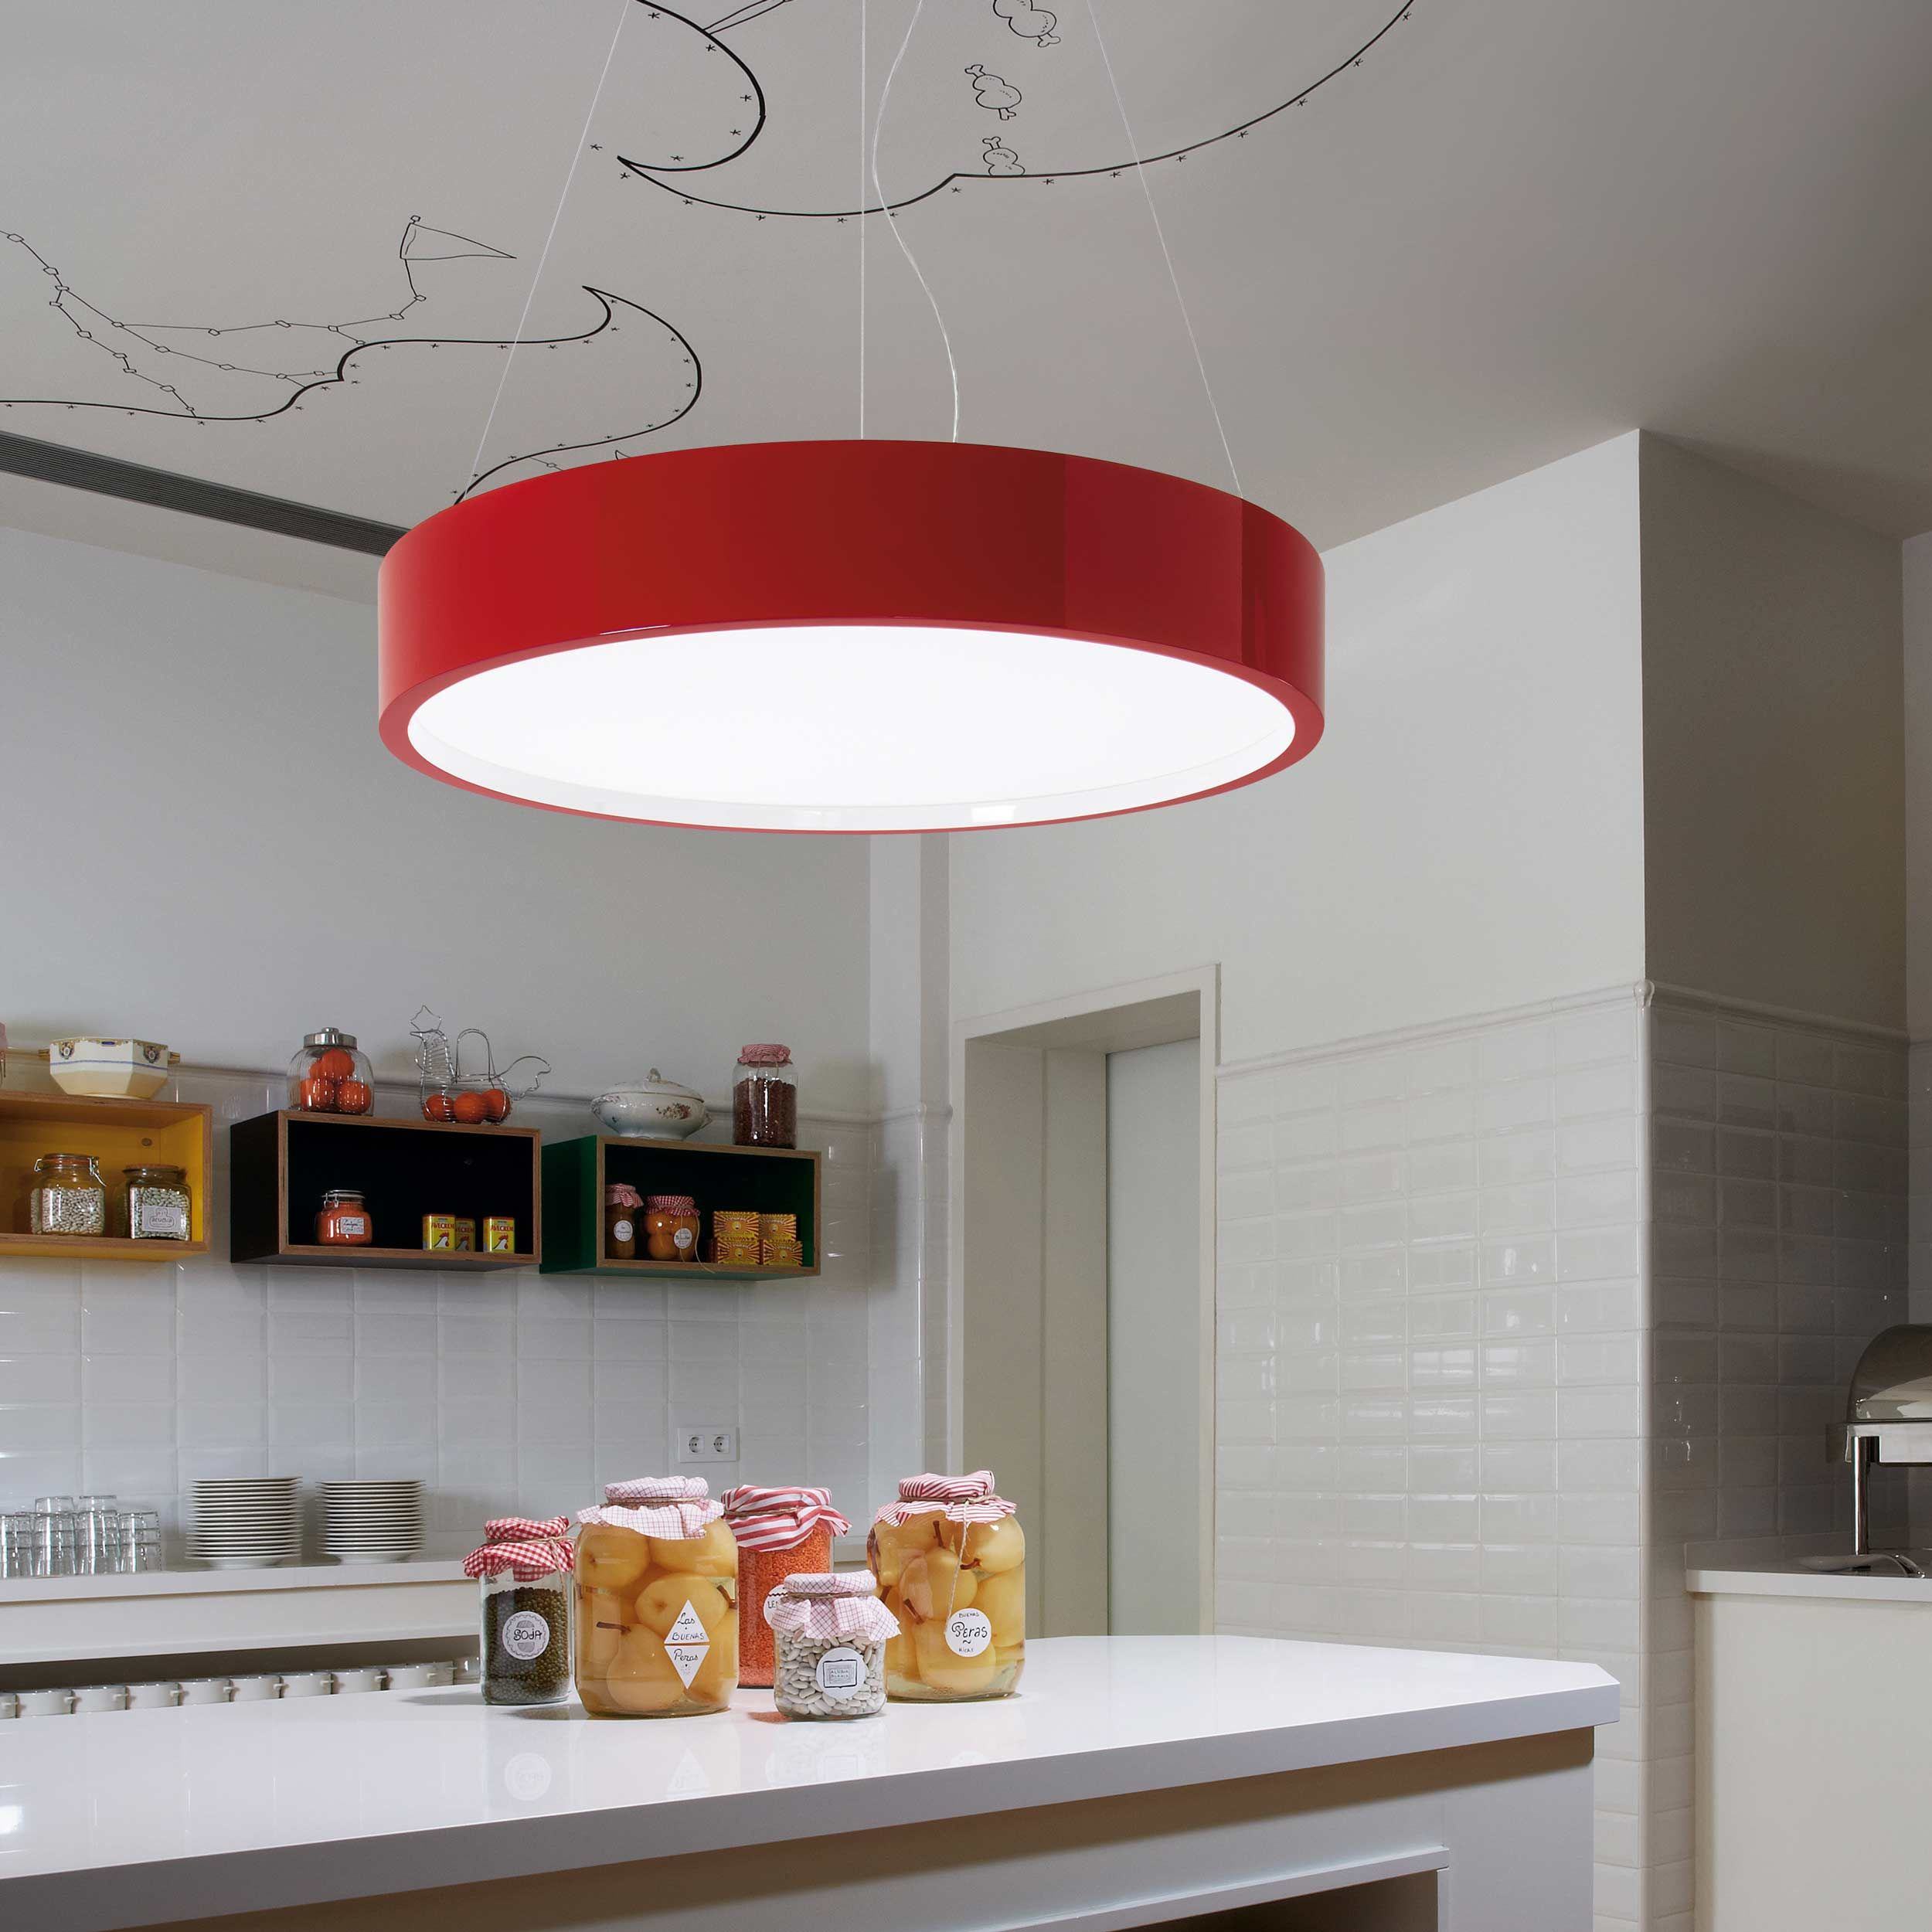 Installation Gallery Kitchen Lighting NNPS Combo Pinterest - Kitchen lighting companies